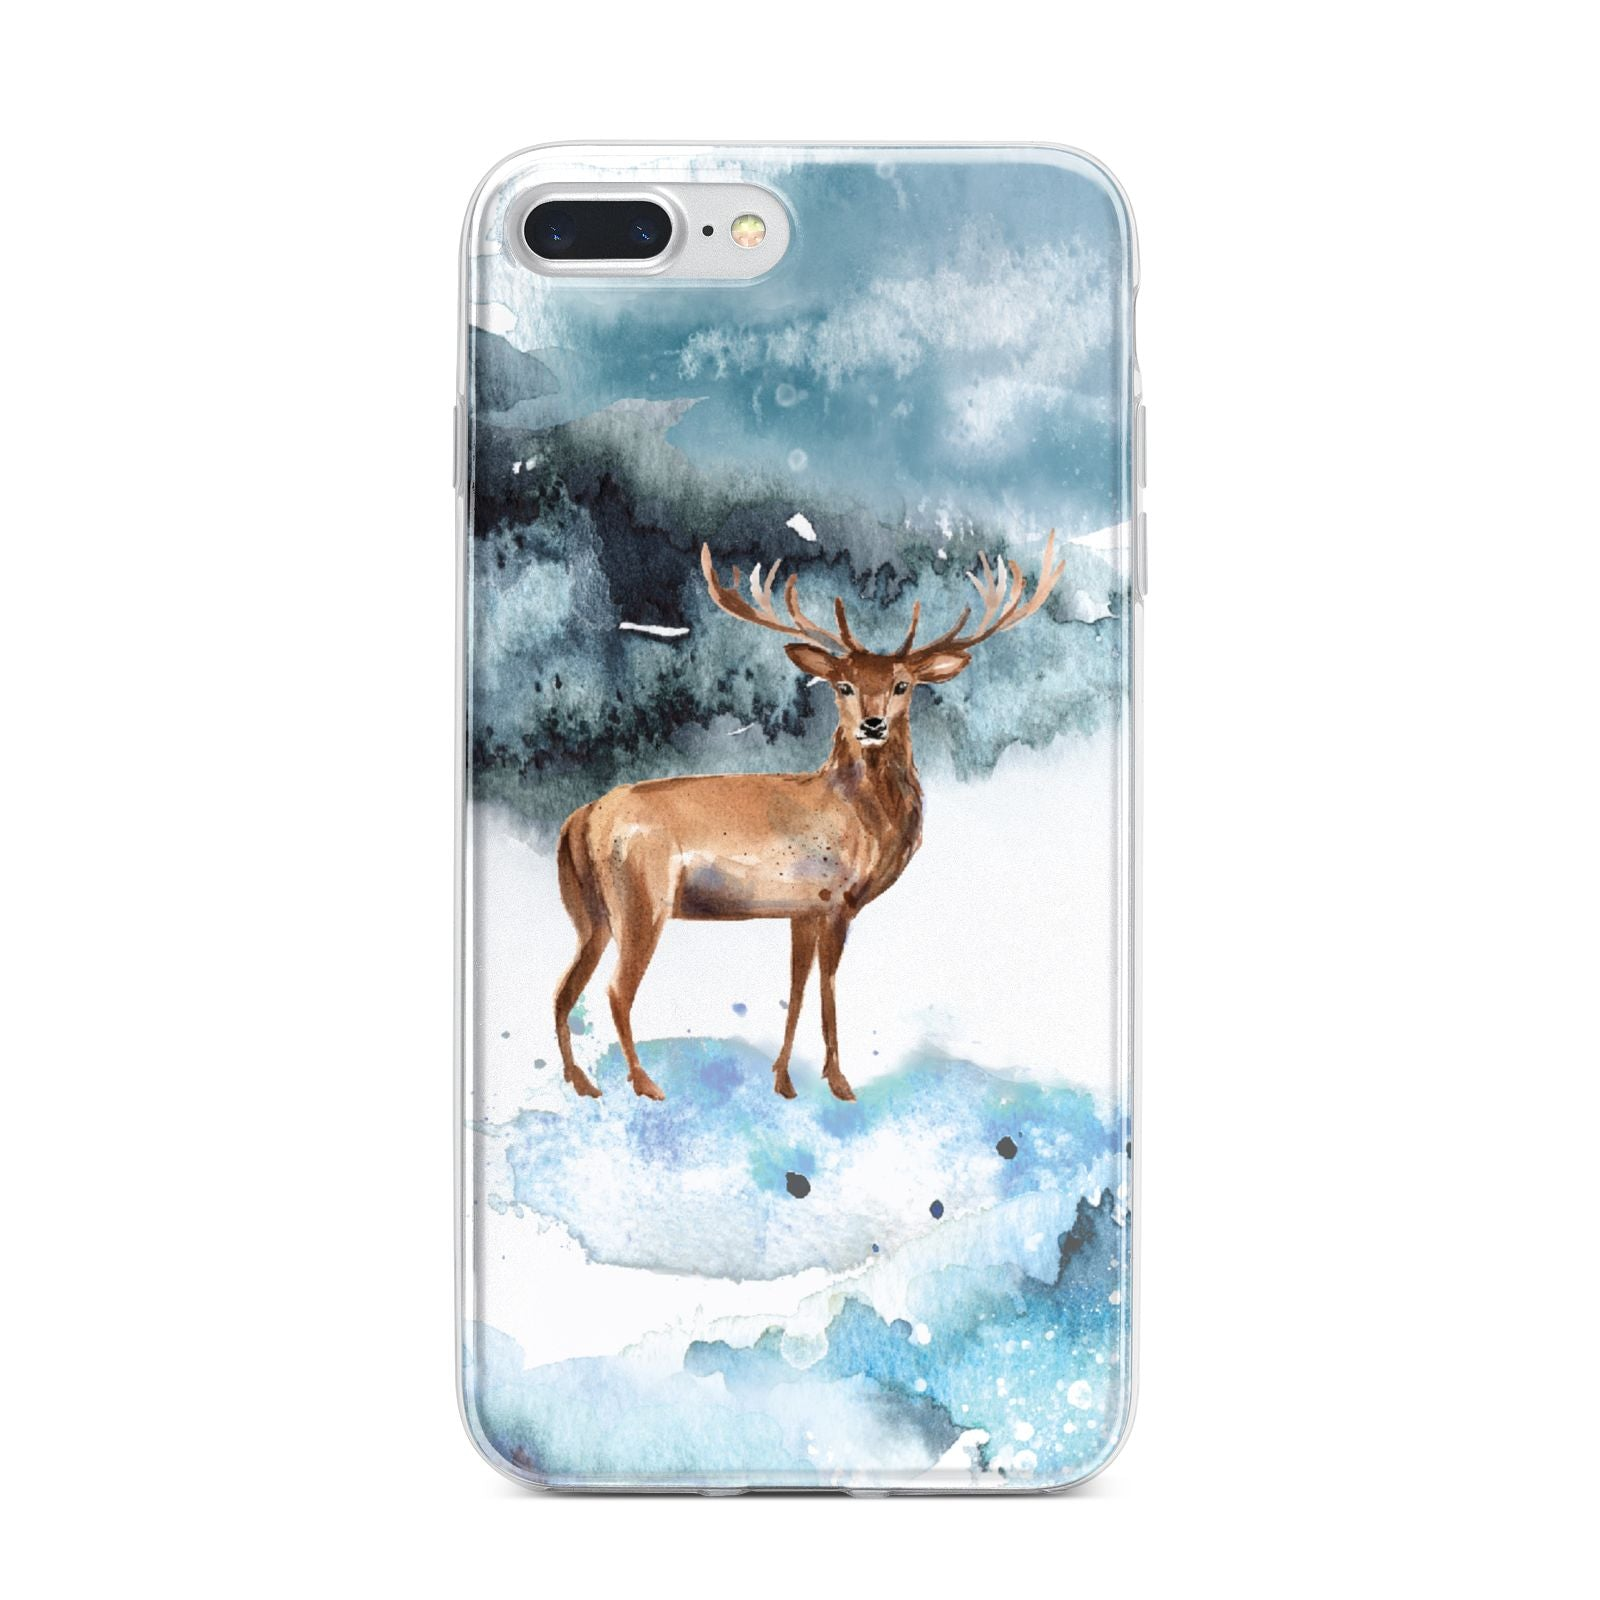 Christmas Winter Stag iPhone 7 Plus Bumper Case on Silver iPhone